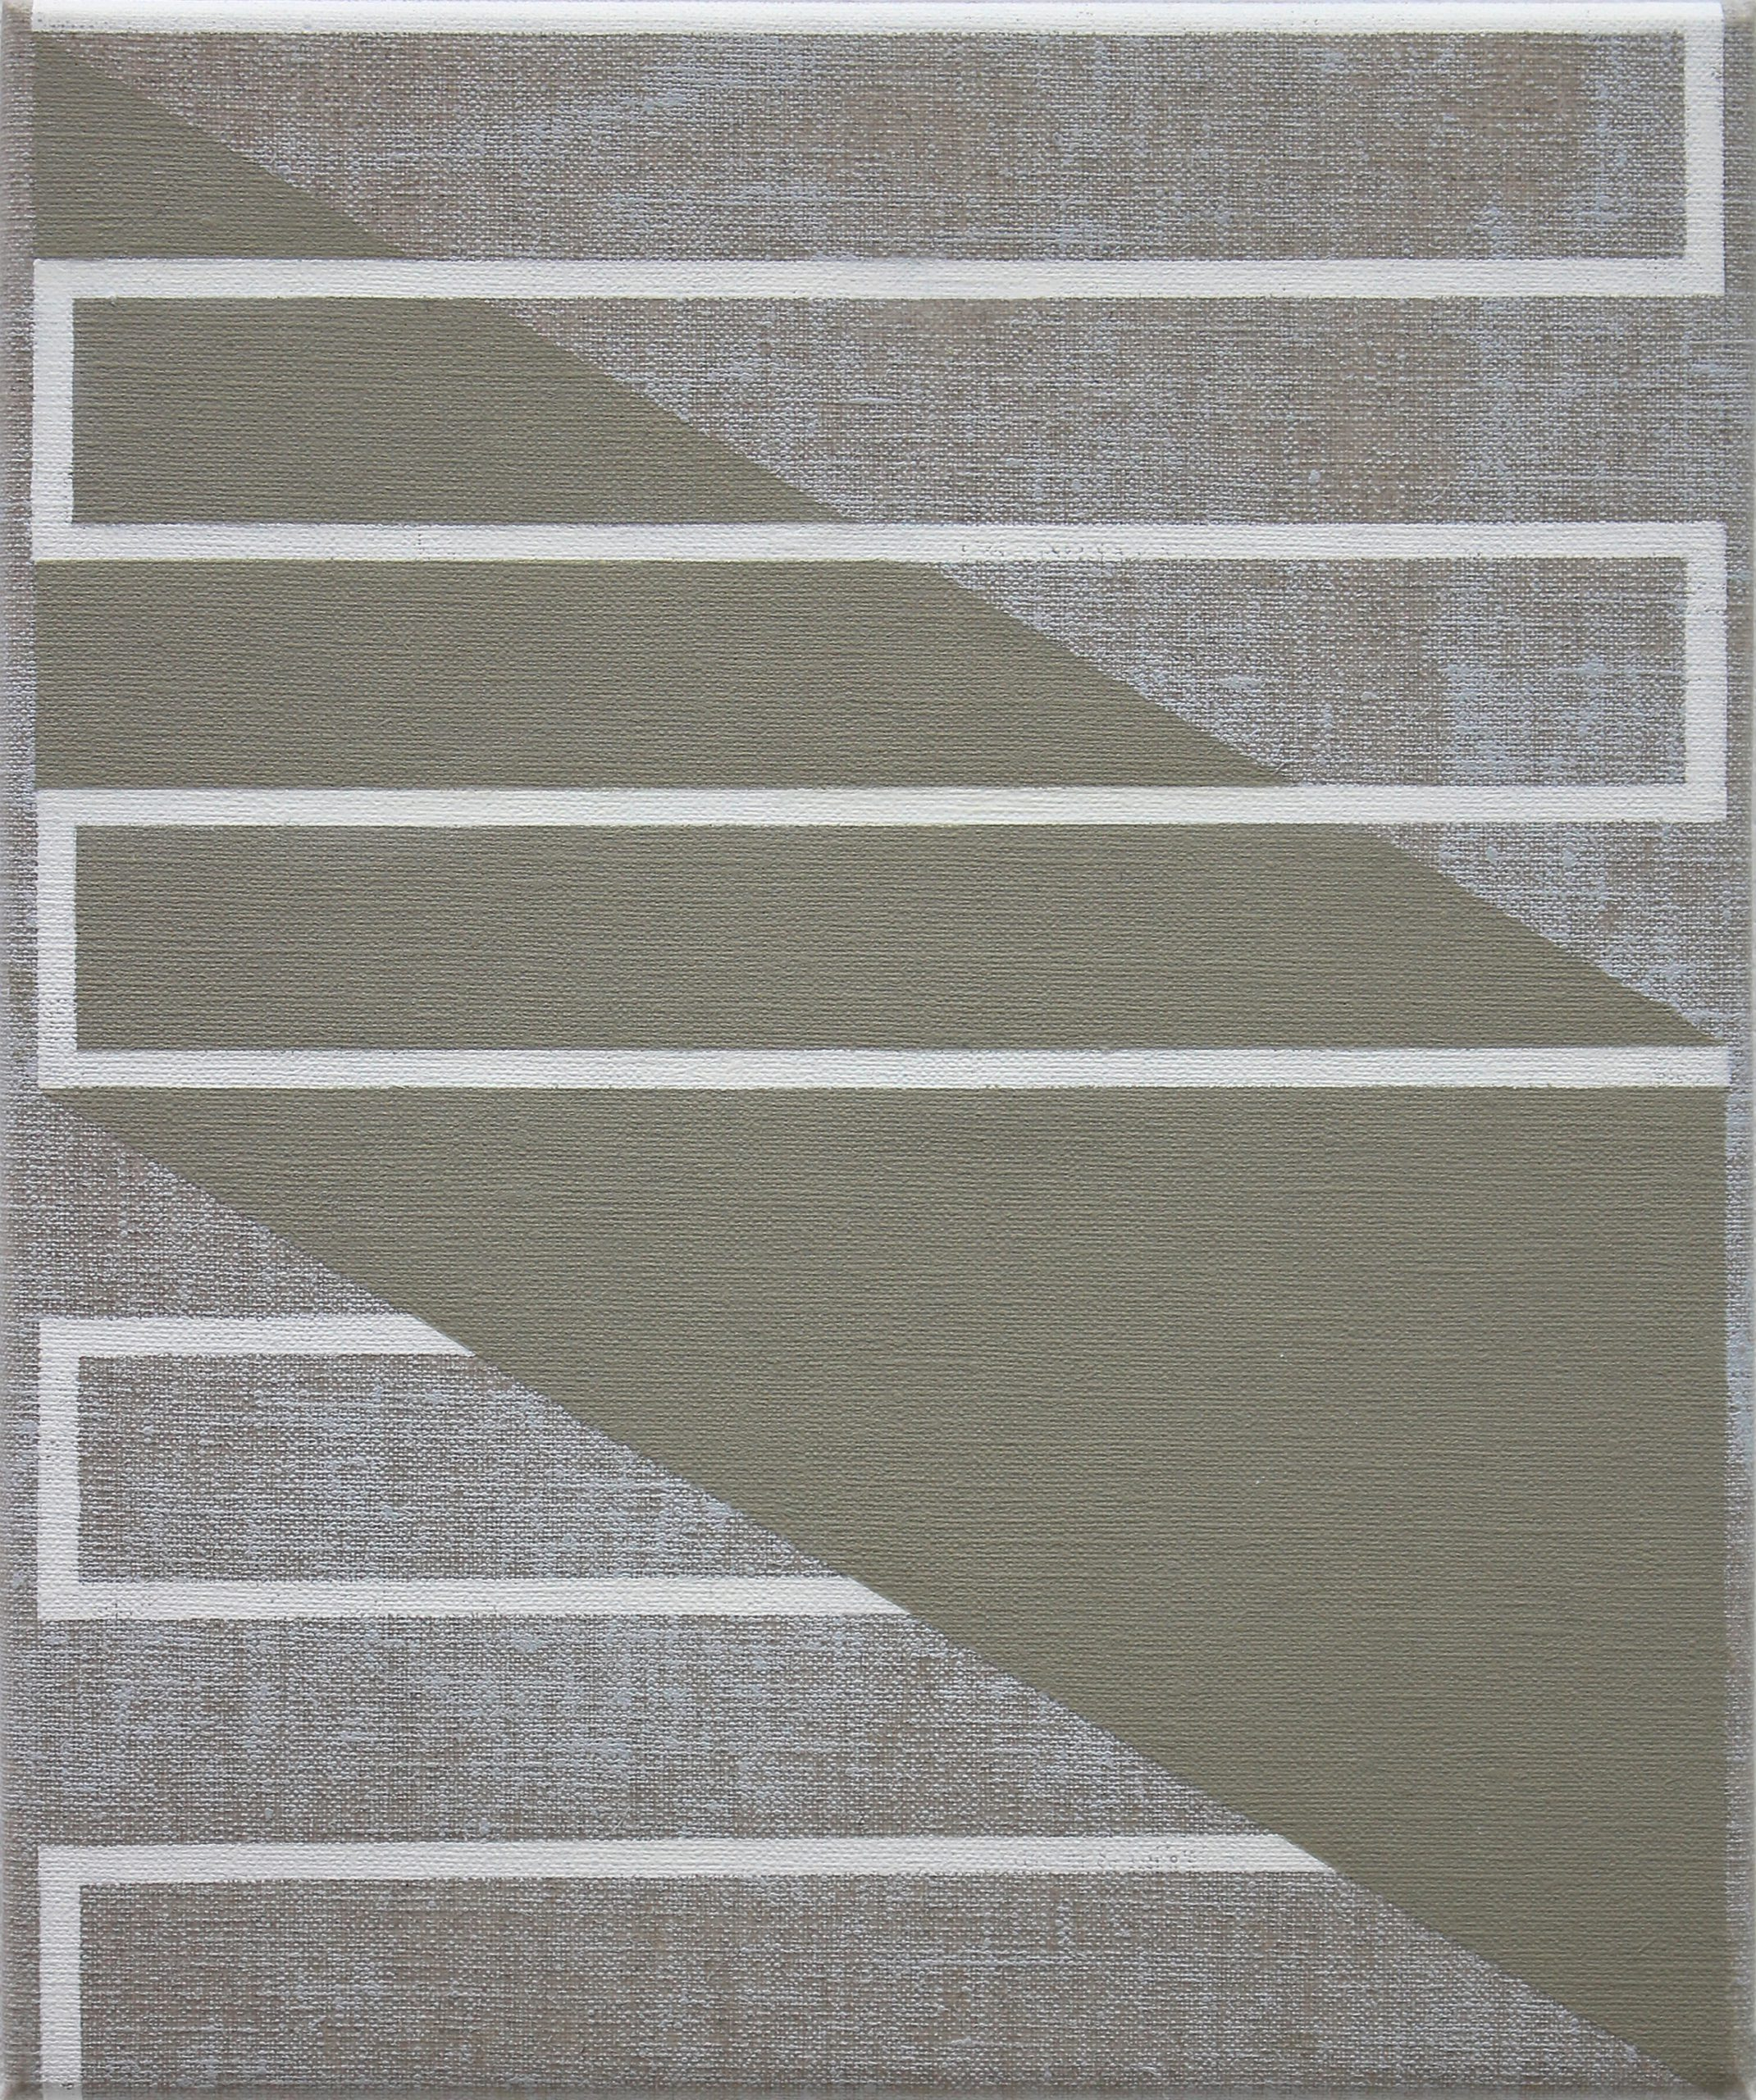 Untitled (Grey Brown White)